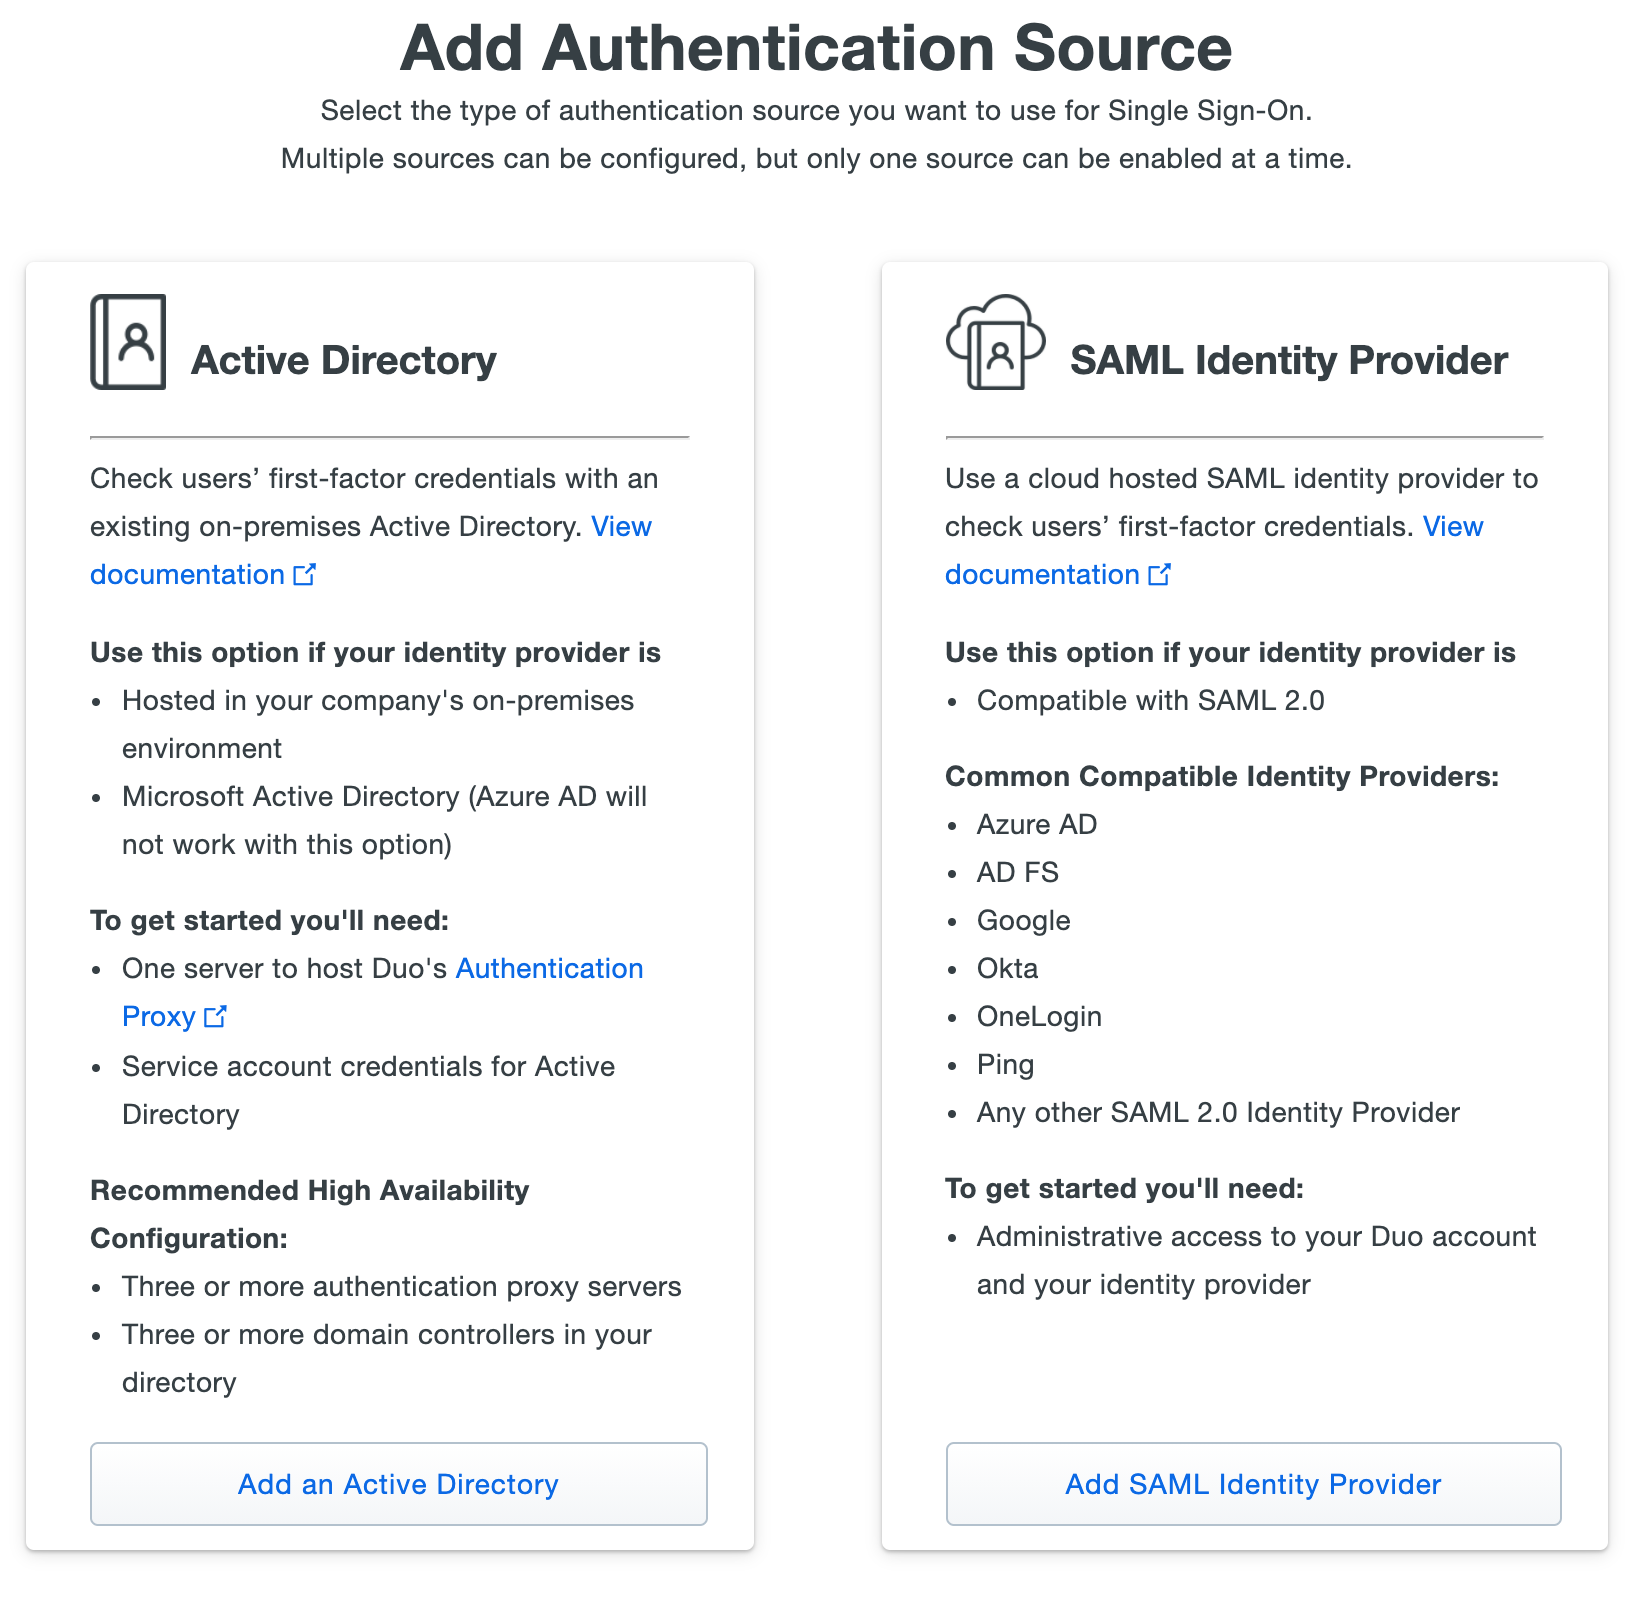 Choosing an authentication source